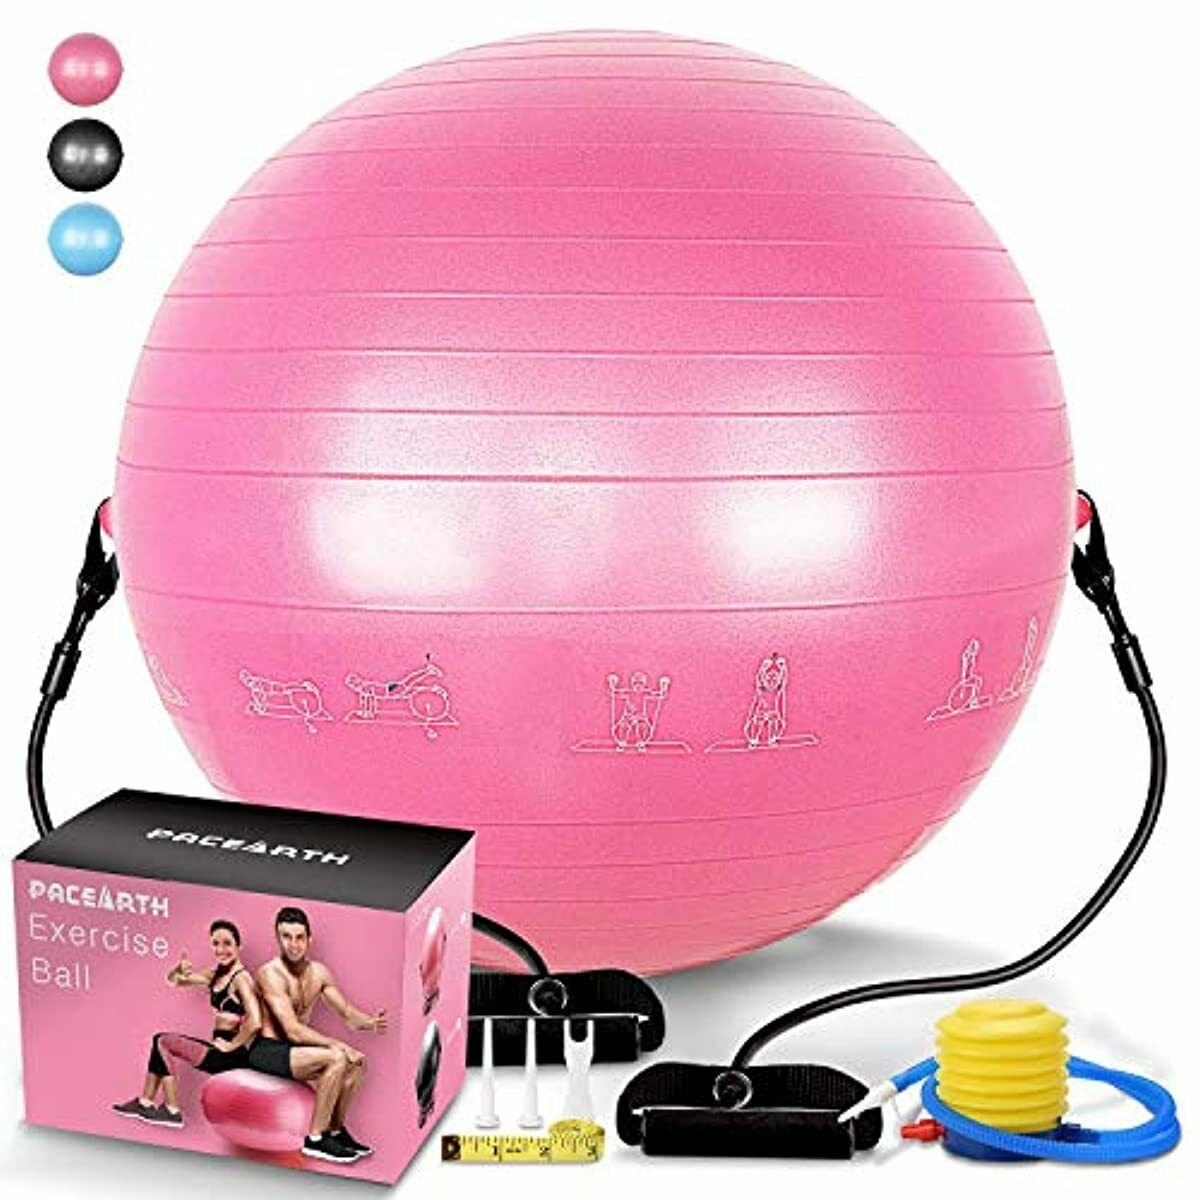 Heavy Duty Exercise Ball Thick Yoga Ball Chair + Resistance